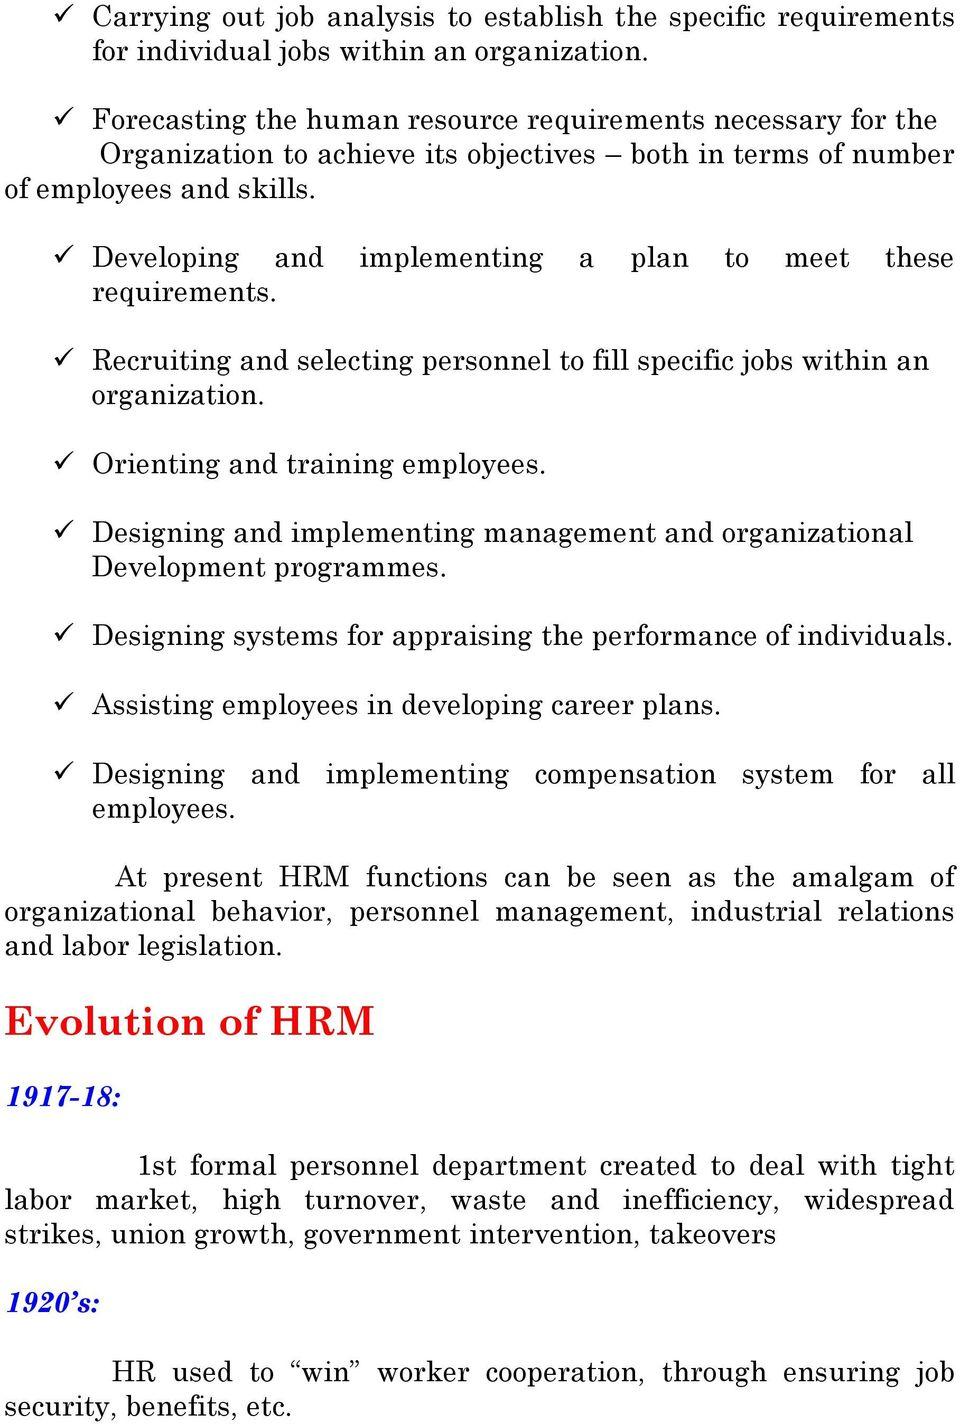 Developing and implementing a plan to meet these requirements. Recruiting and selecting personnel to fill specific jobs within an organization. Orienting and training employees.